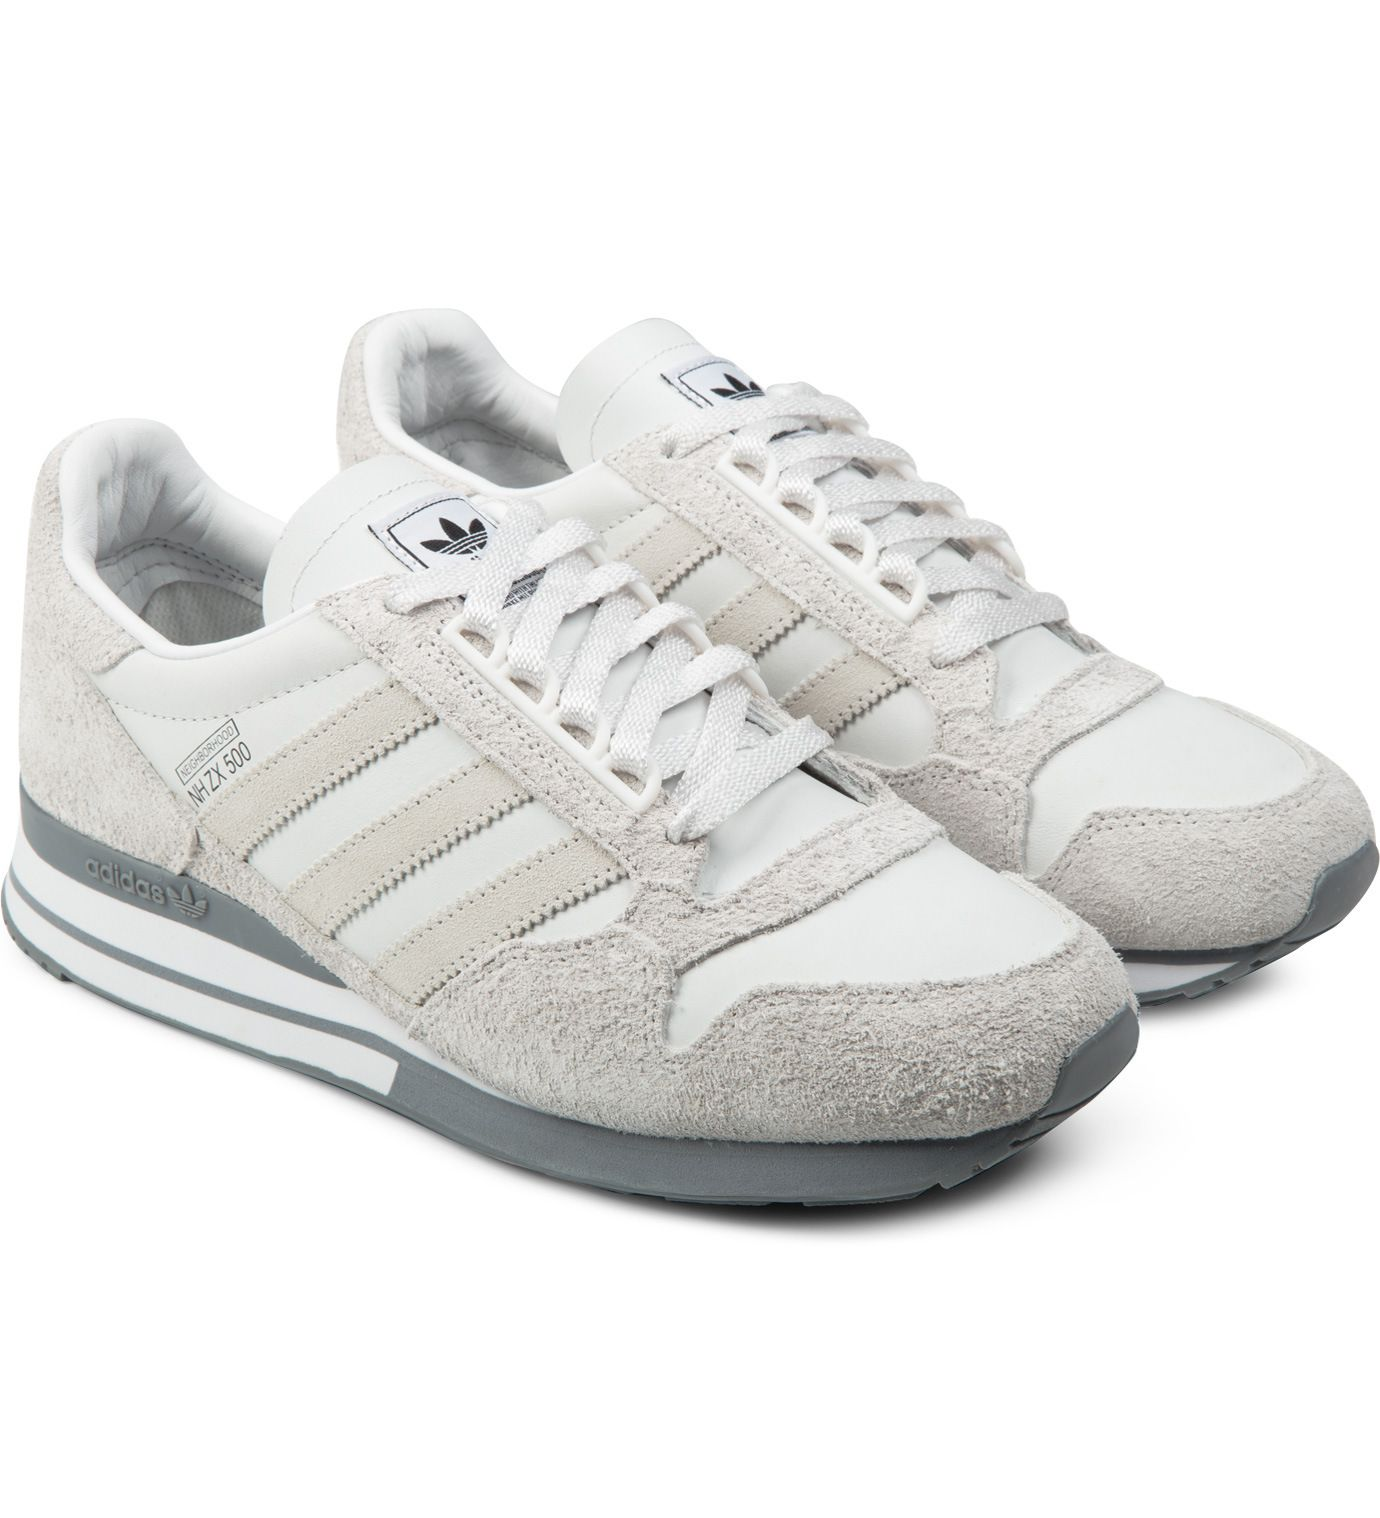 5c875366ddf74 ... discount code for adidas originals neighborhood x adidas originals neo  white grey nh zx 500 og